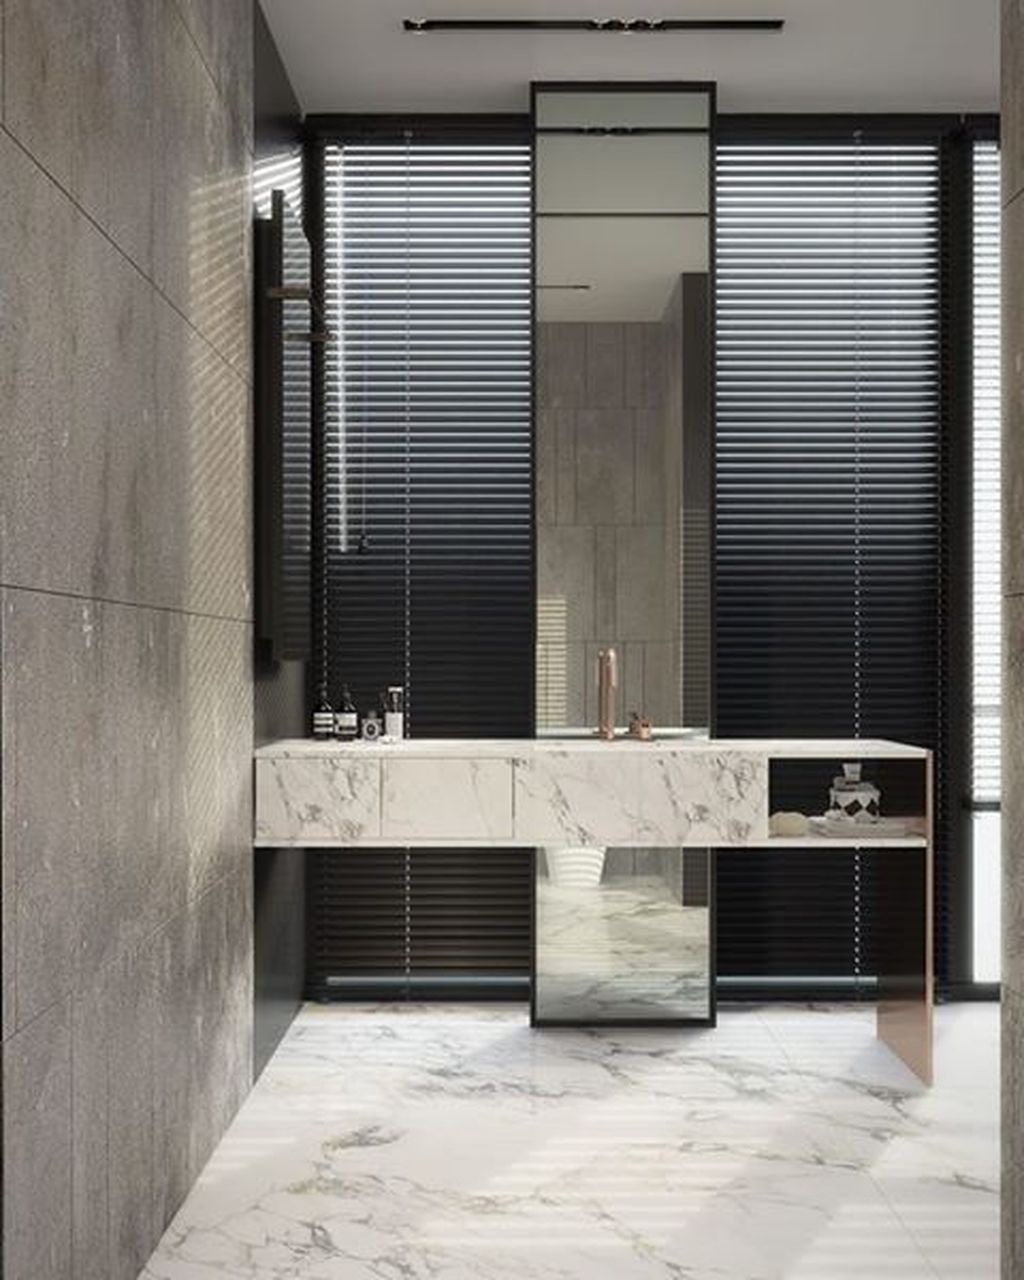 Bathroom Mirror Ideas To Reflect Your Style Bathroom Mirror Design Marble Bathroom Designs Bathroom Design Inspiration